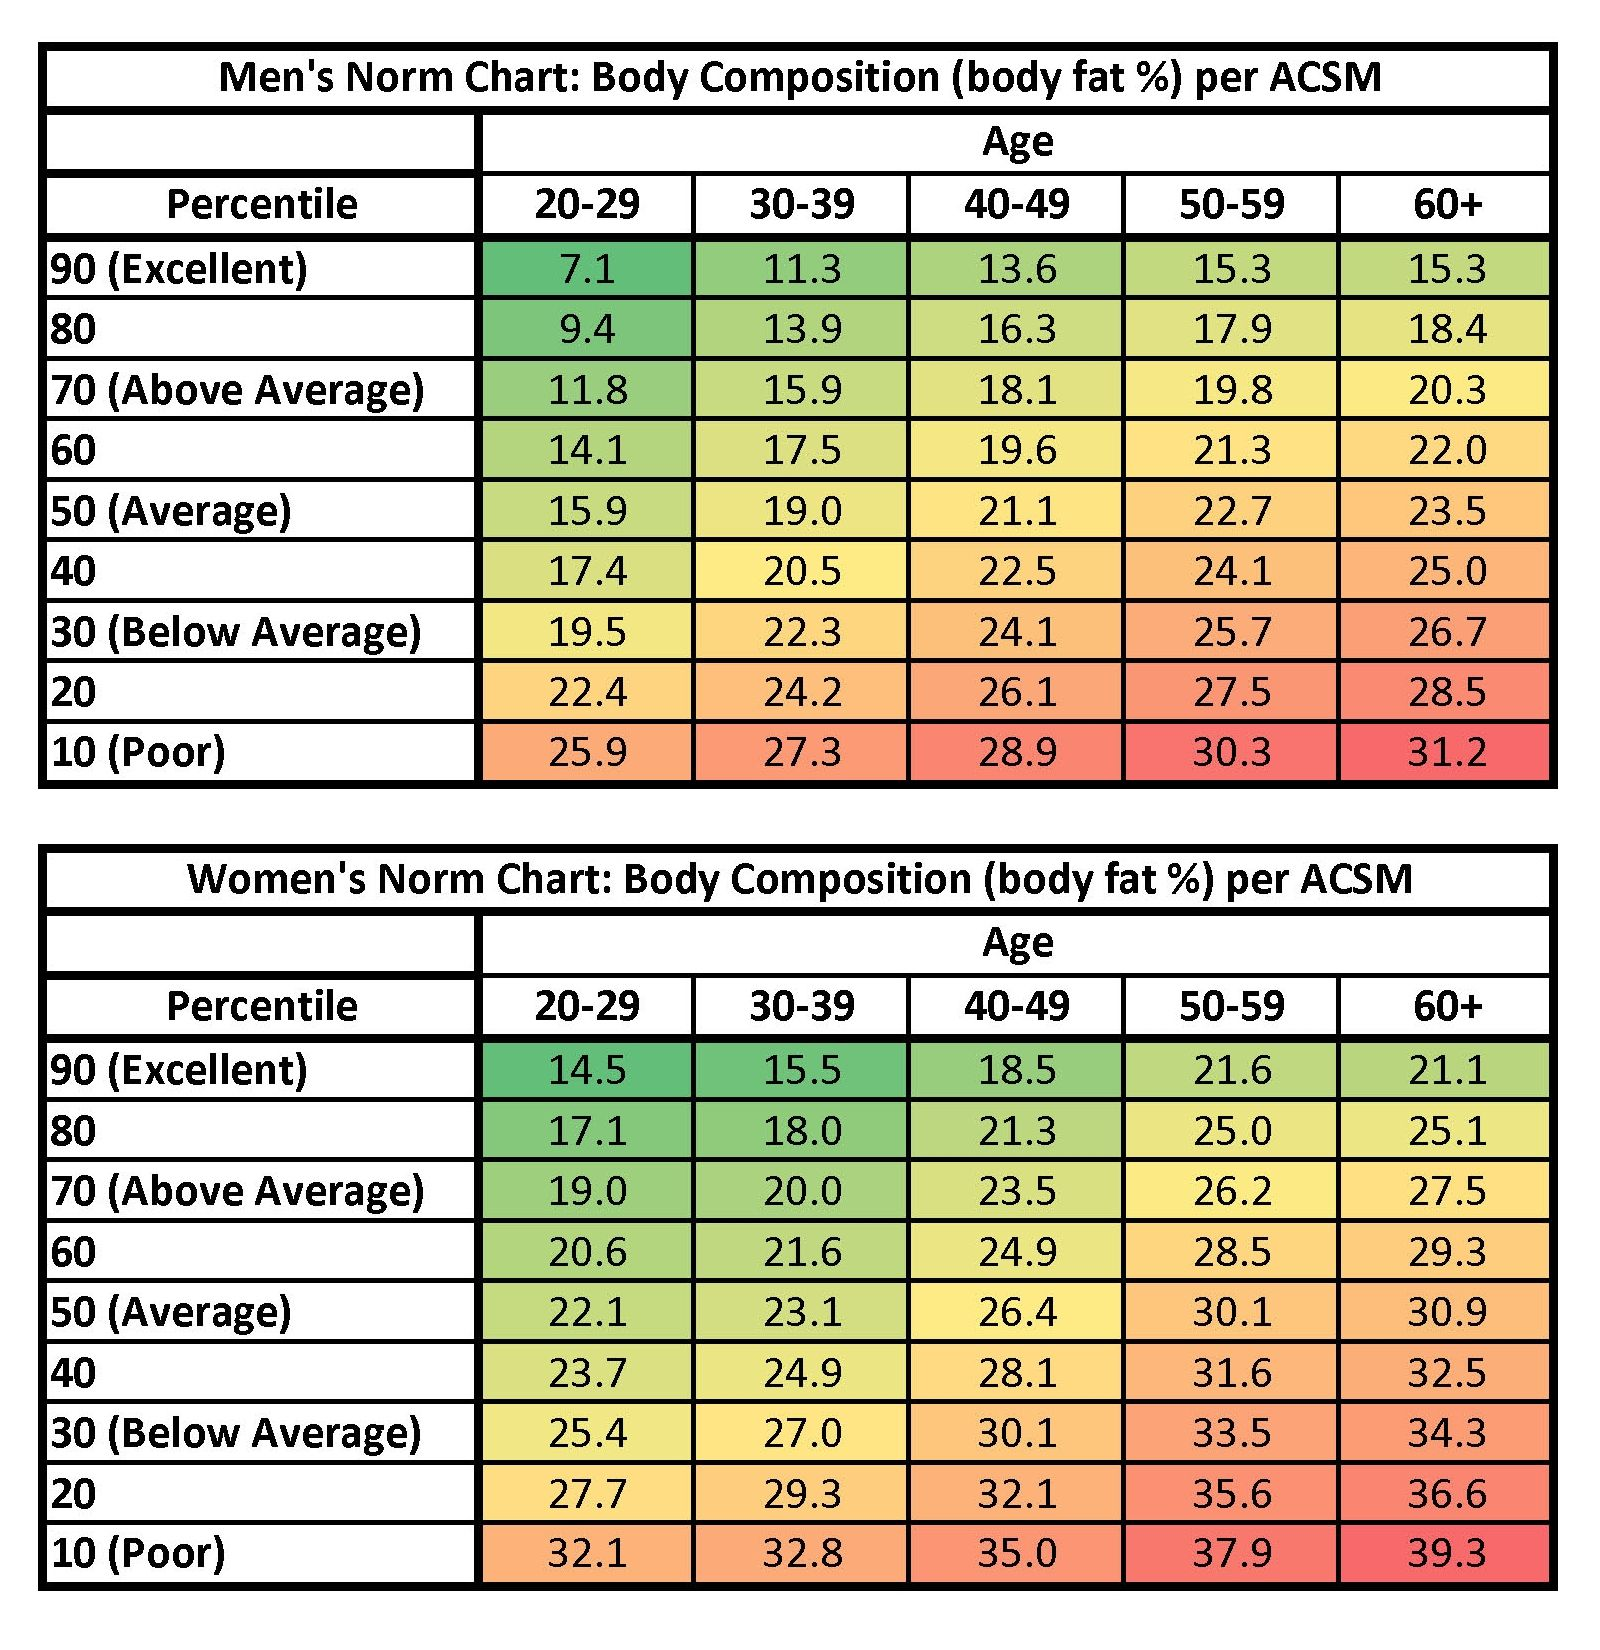 Percentile ranked body fat percentages by age group provided by